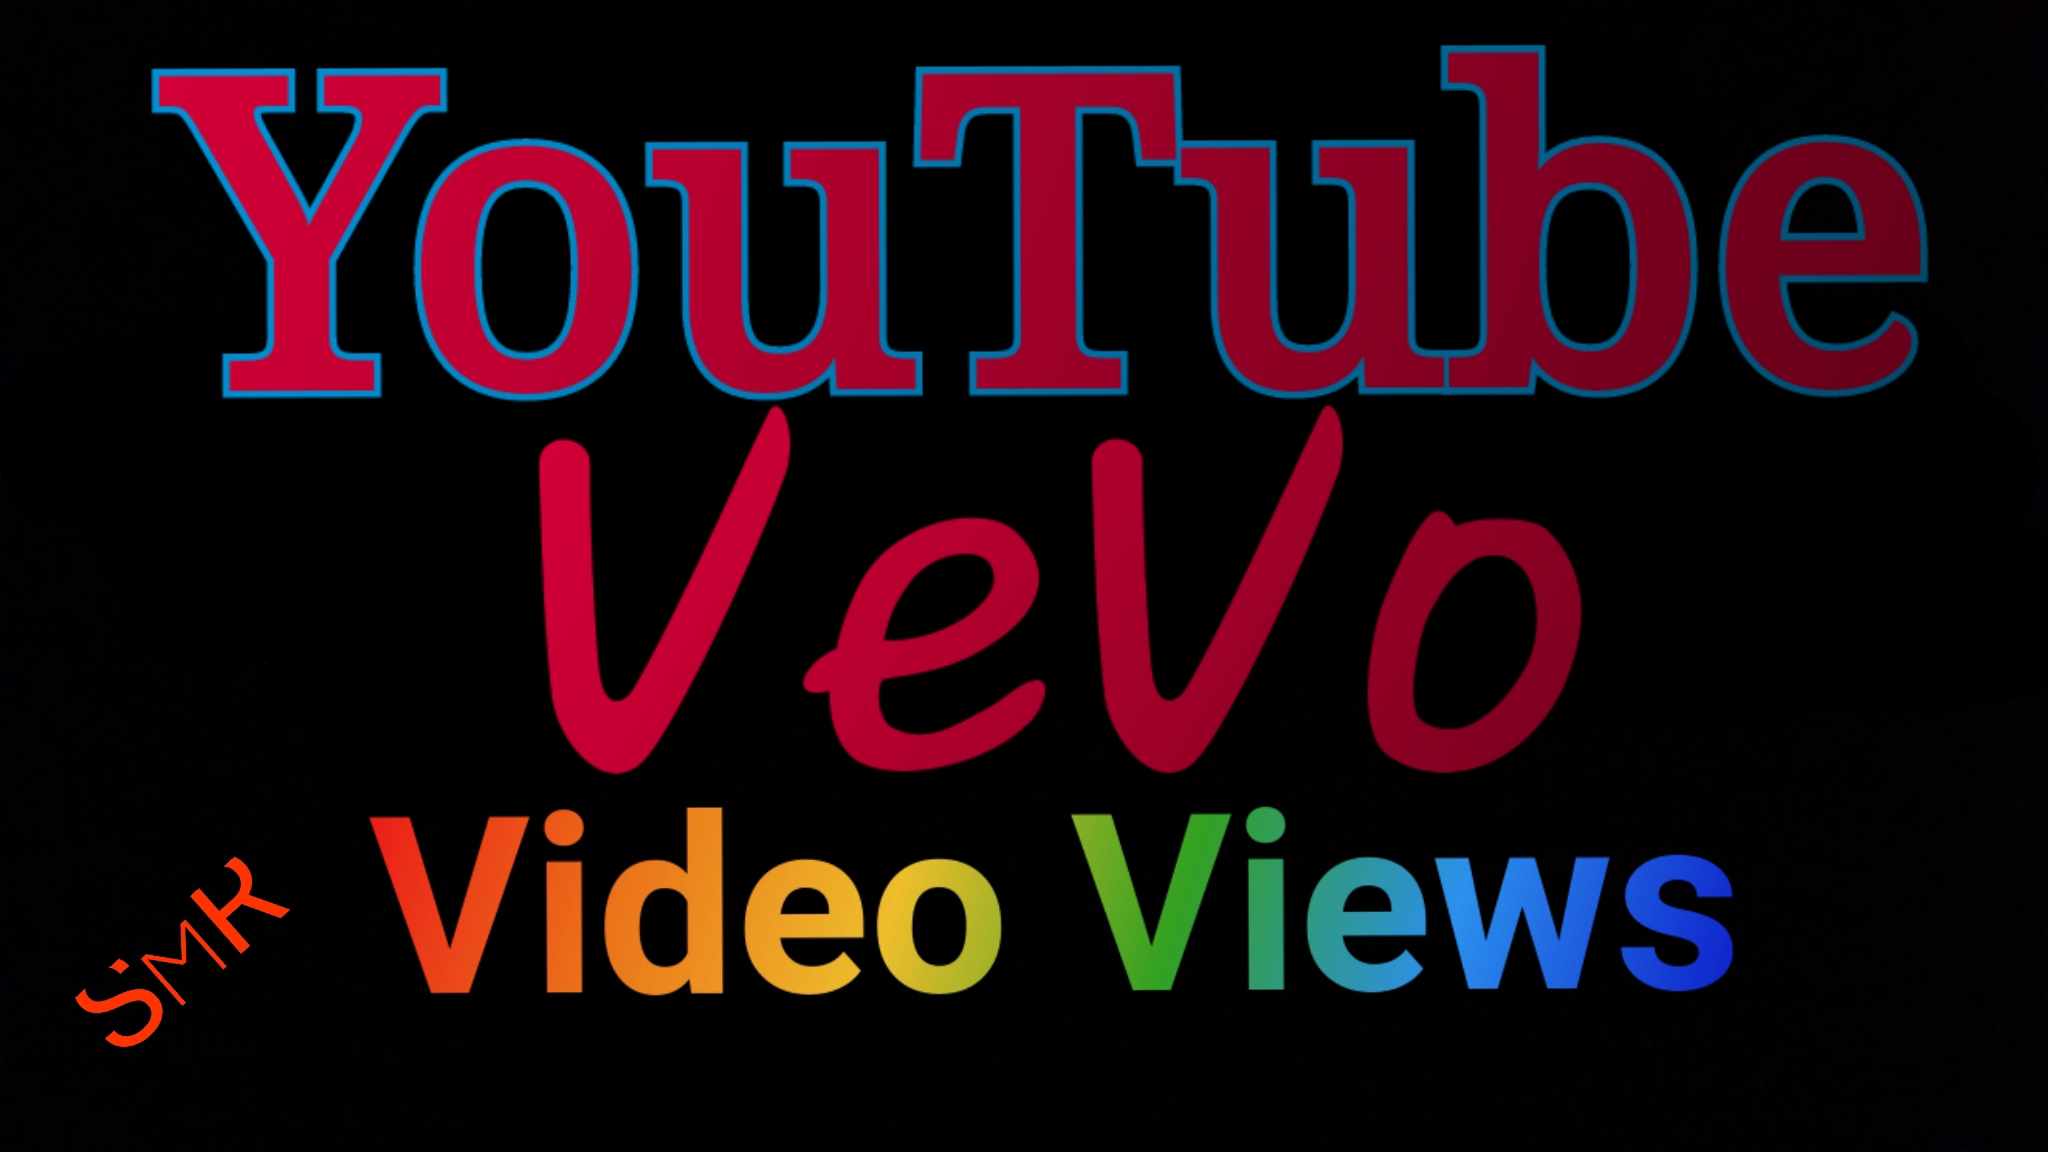 Safe 1000-1200 Youtube Vevo Video View & 30 Video Like lifetime guarantee